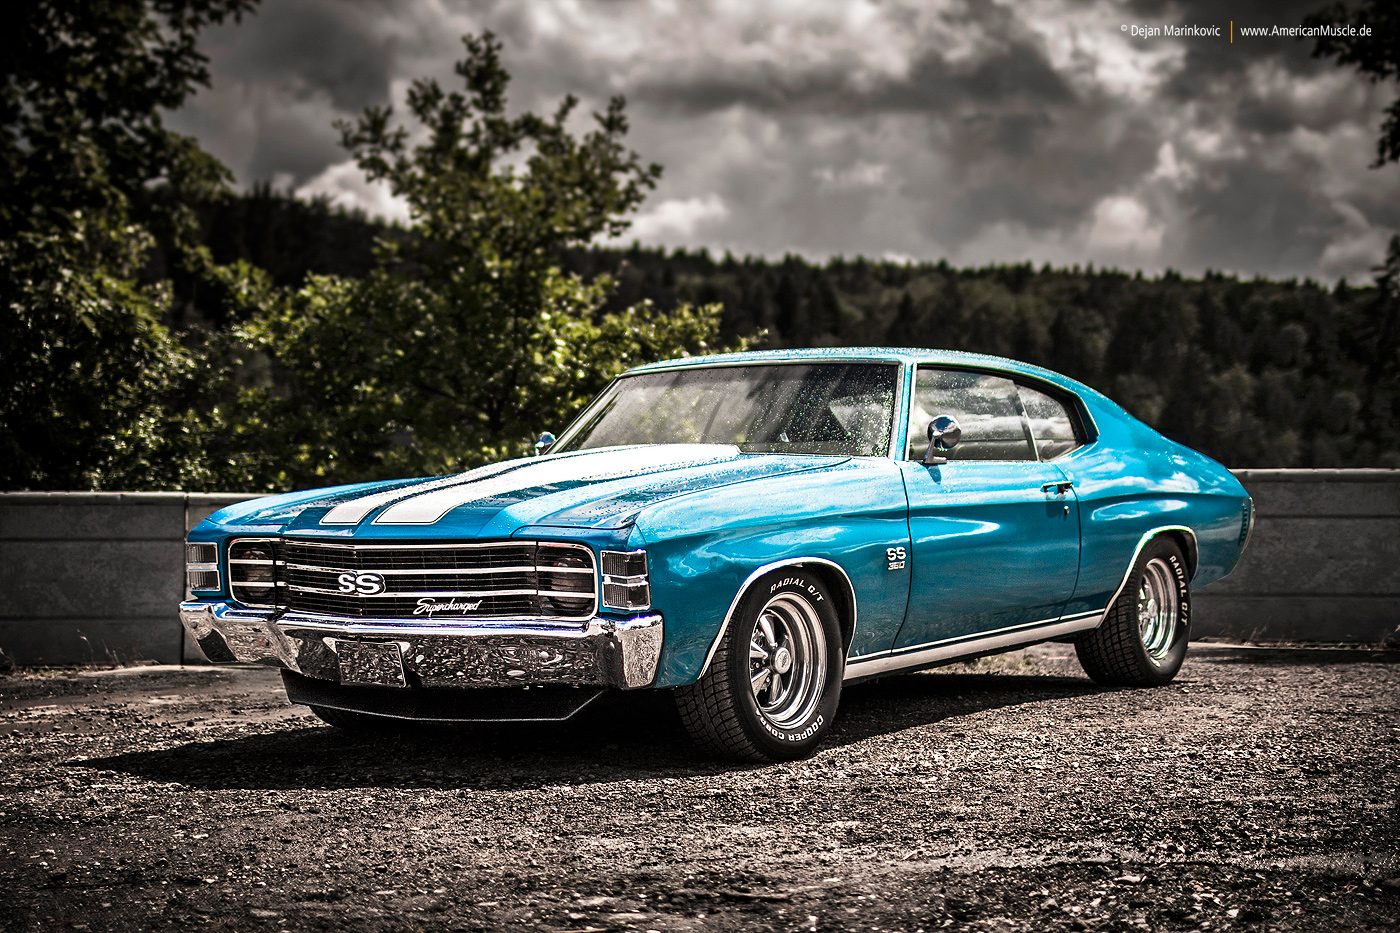 All Chevy 1971 chevrolet chevelle ss : 1971 Chevrolet Chevelle SS by AmericanMuscle on DeviantArt